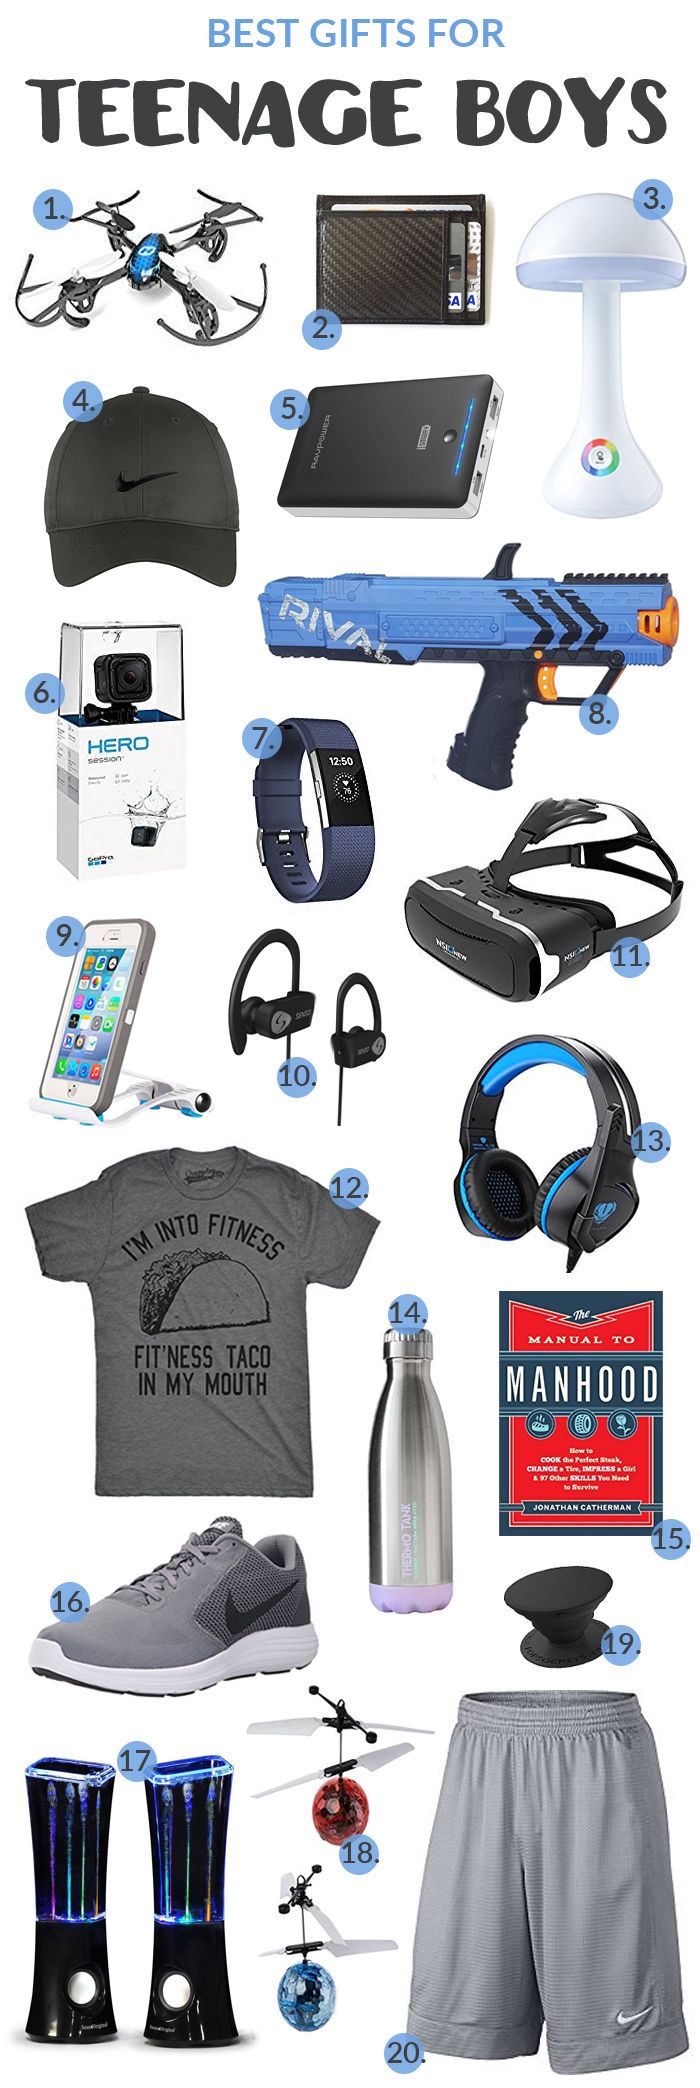 Best Gifts for Teenage Boys — Our Kind of Crazy